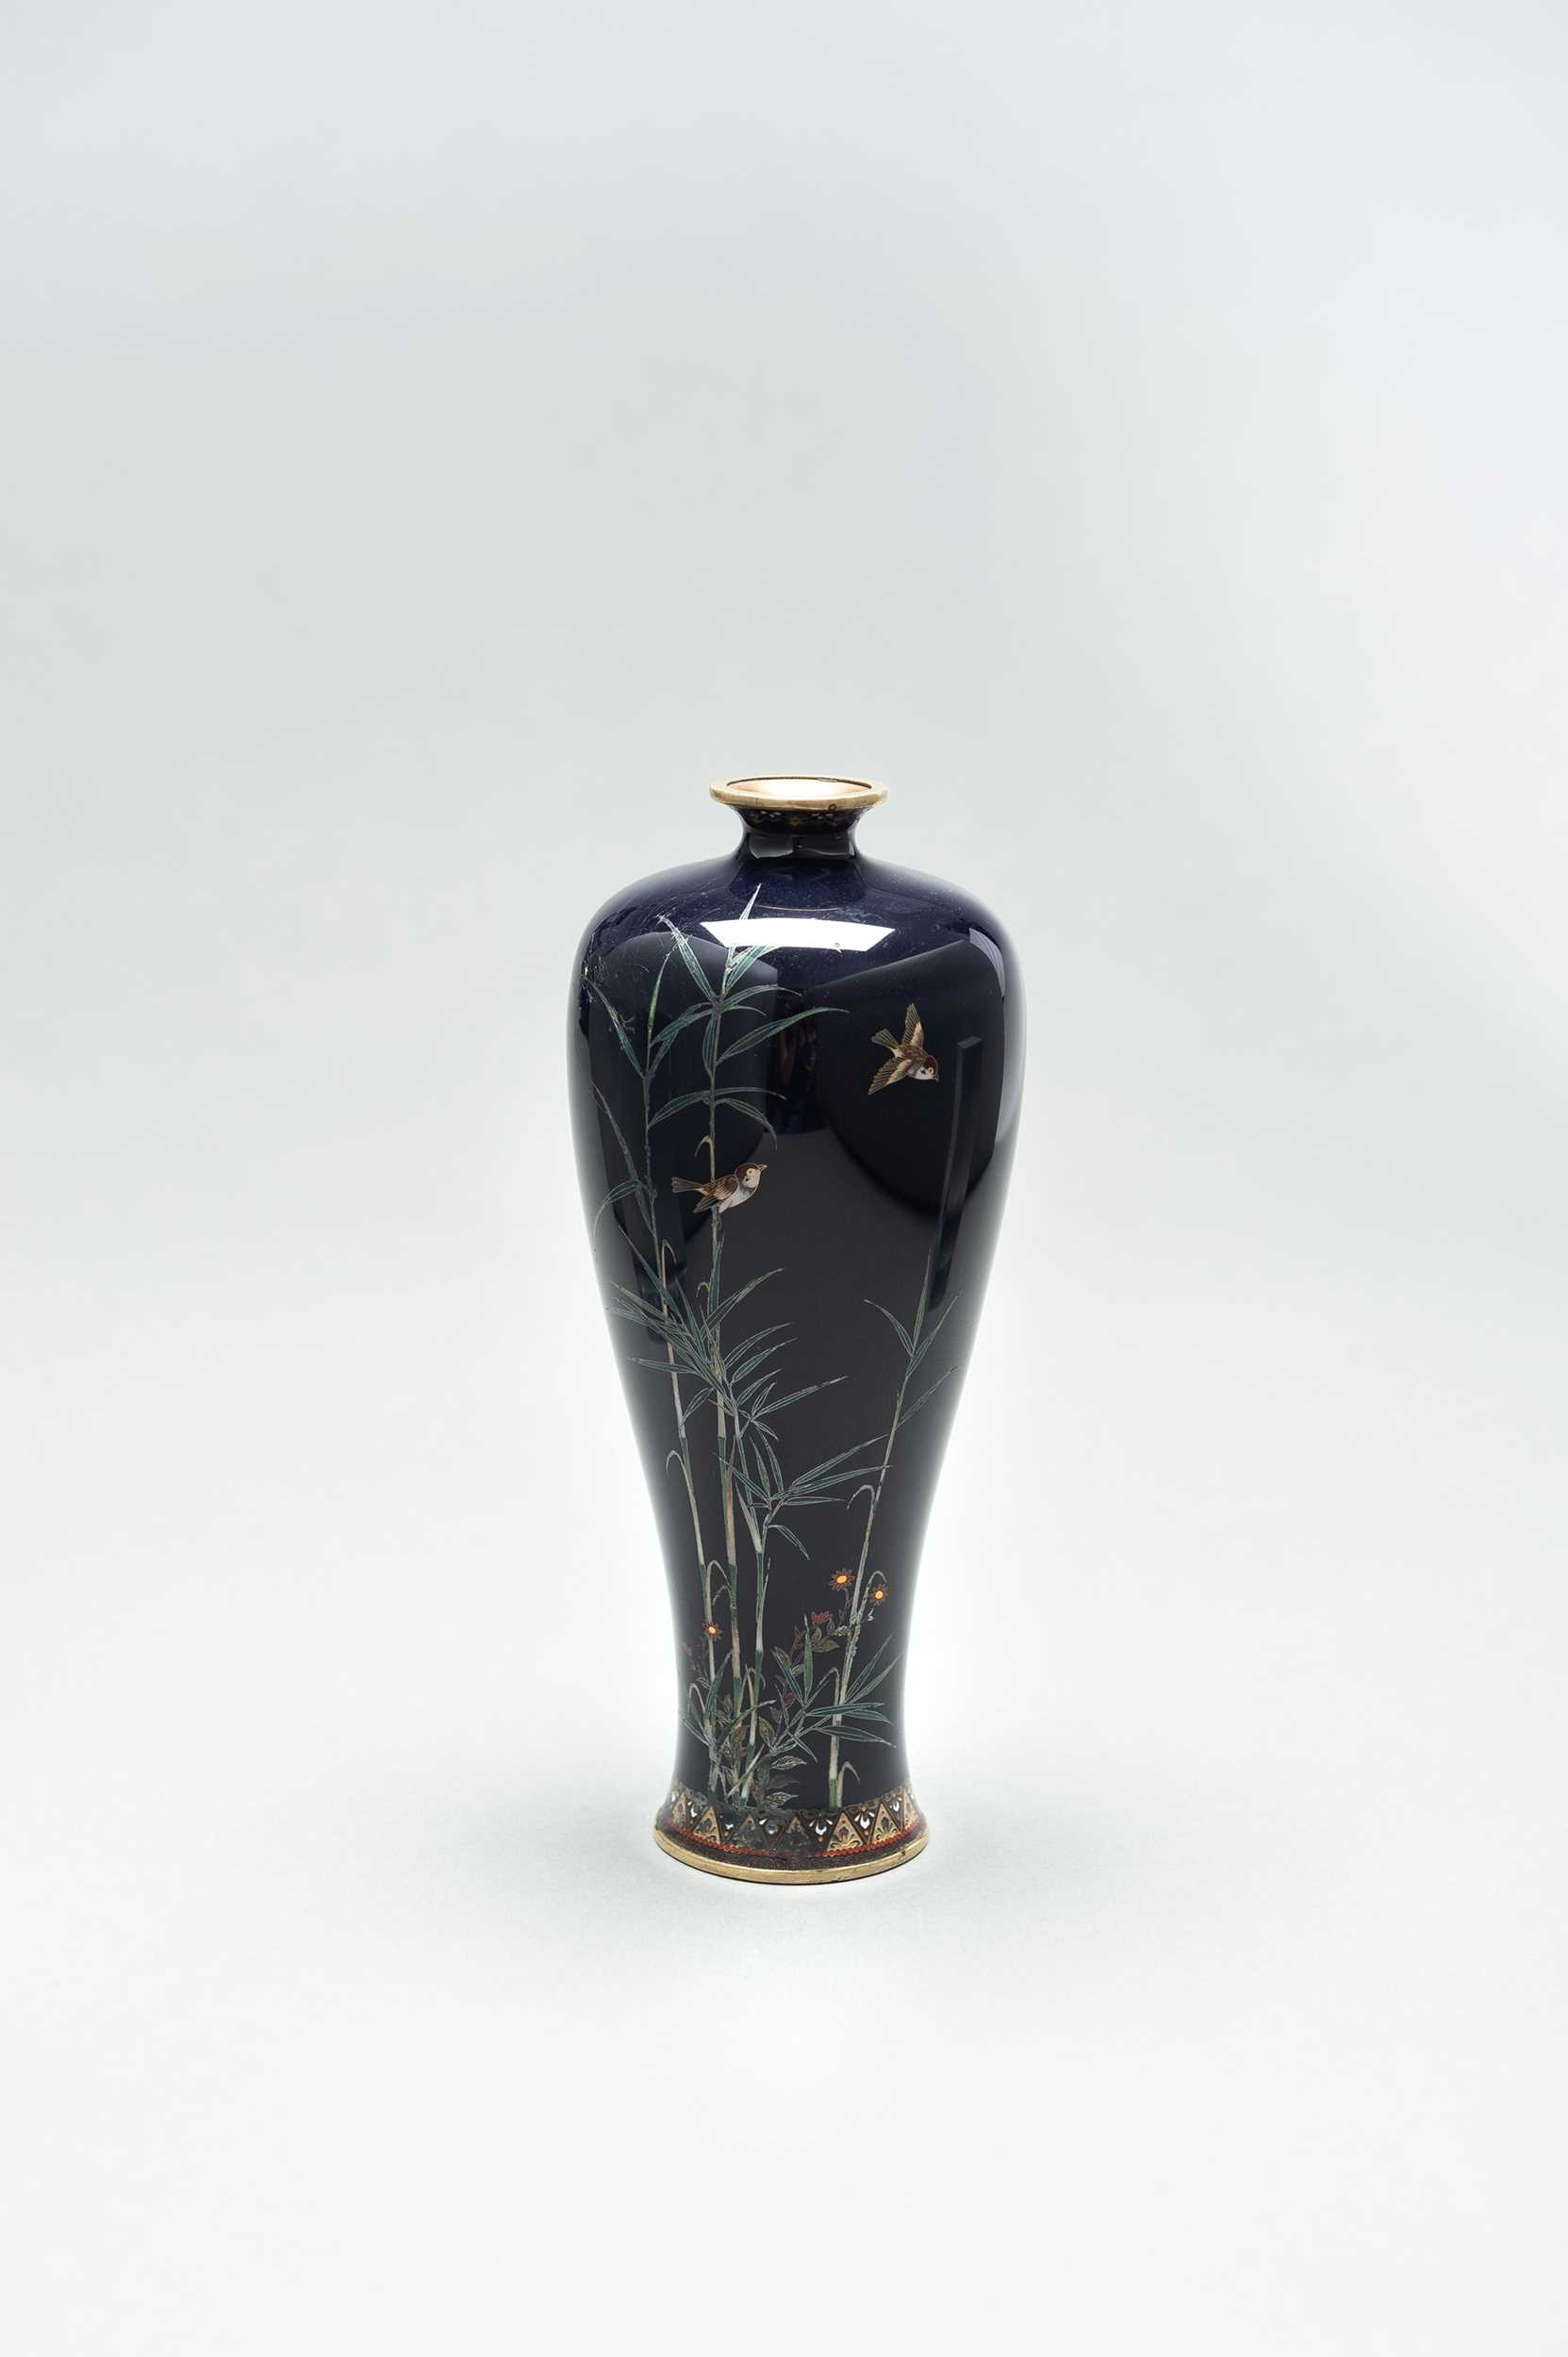 Lot 59 - A CLOISONNÉ ENAMEL VASE WITH BAMBOO AND BIRDS